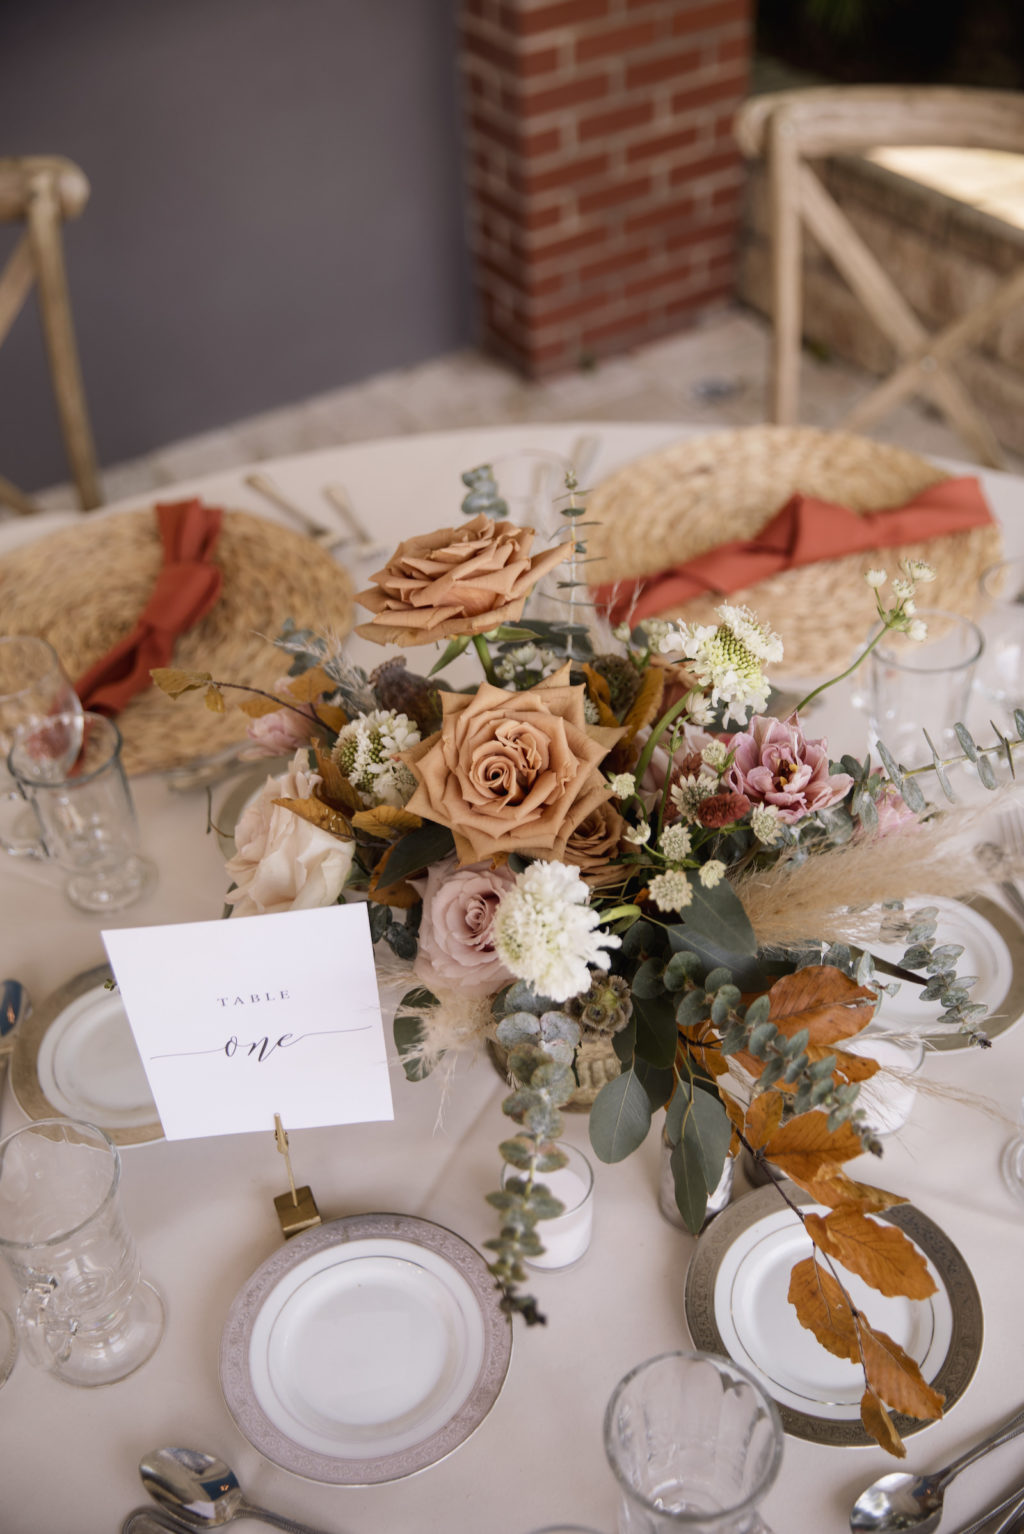 Wicker Place Mats with Burnt Orange Napkins on Cream Linen   Low Centerpieces with Roses, Greenery, and Pampas Leaves in Gold Holder   Bohemian Wedding Reception Decor for Tablescapes   Sarasota Rentals Kate Ryan Event Rentals